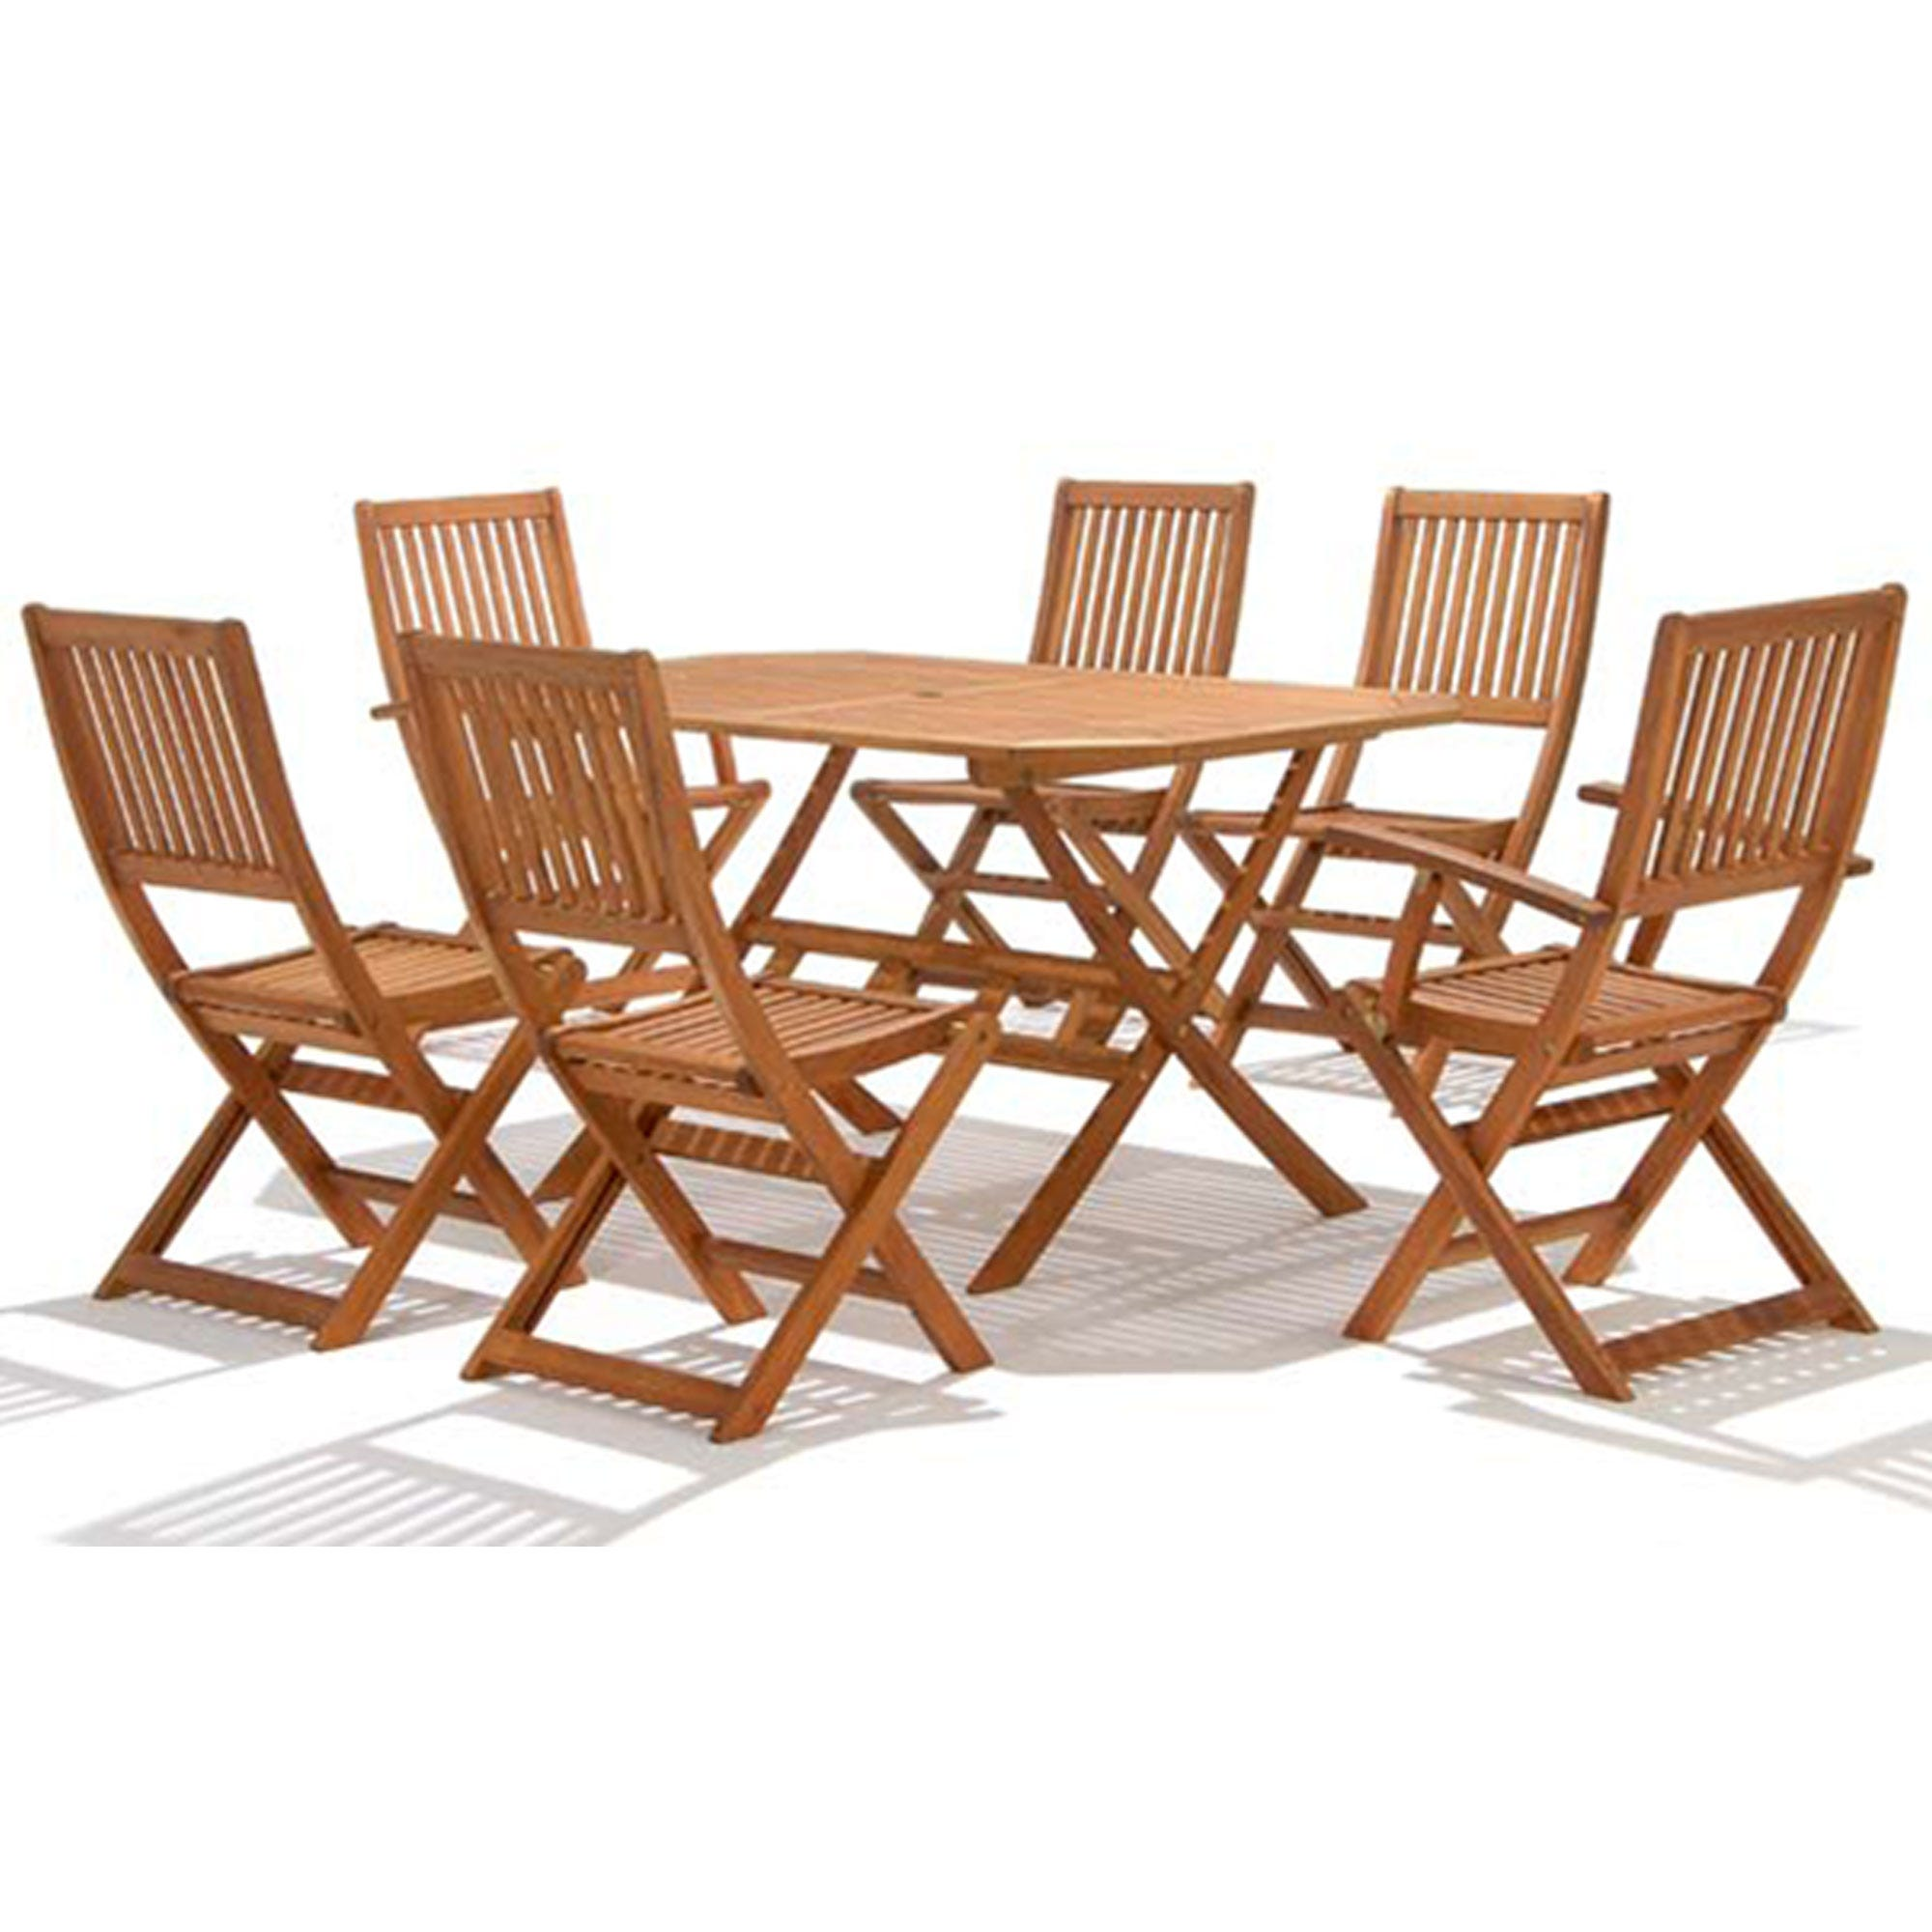 Image of Country Hardwood Outdoor Table – 150cm